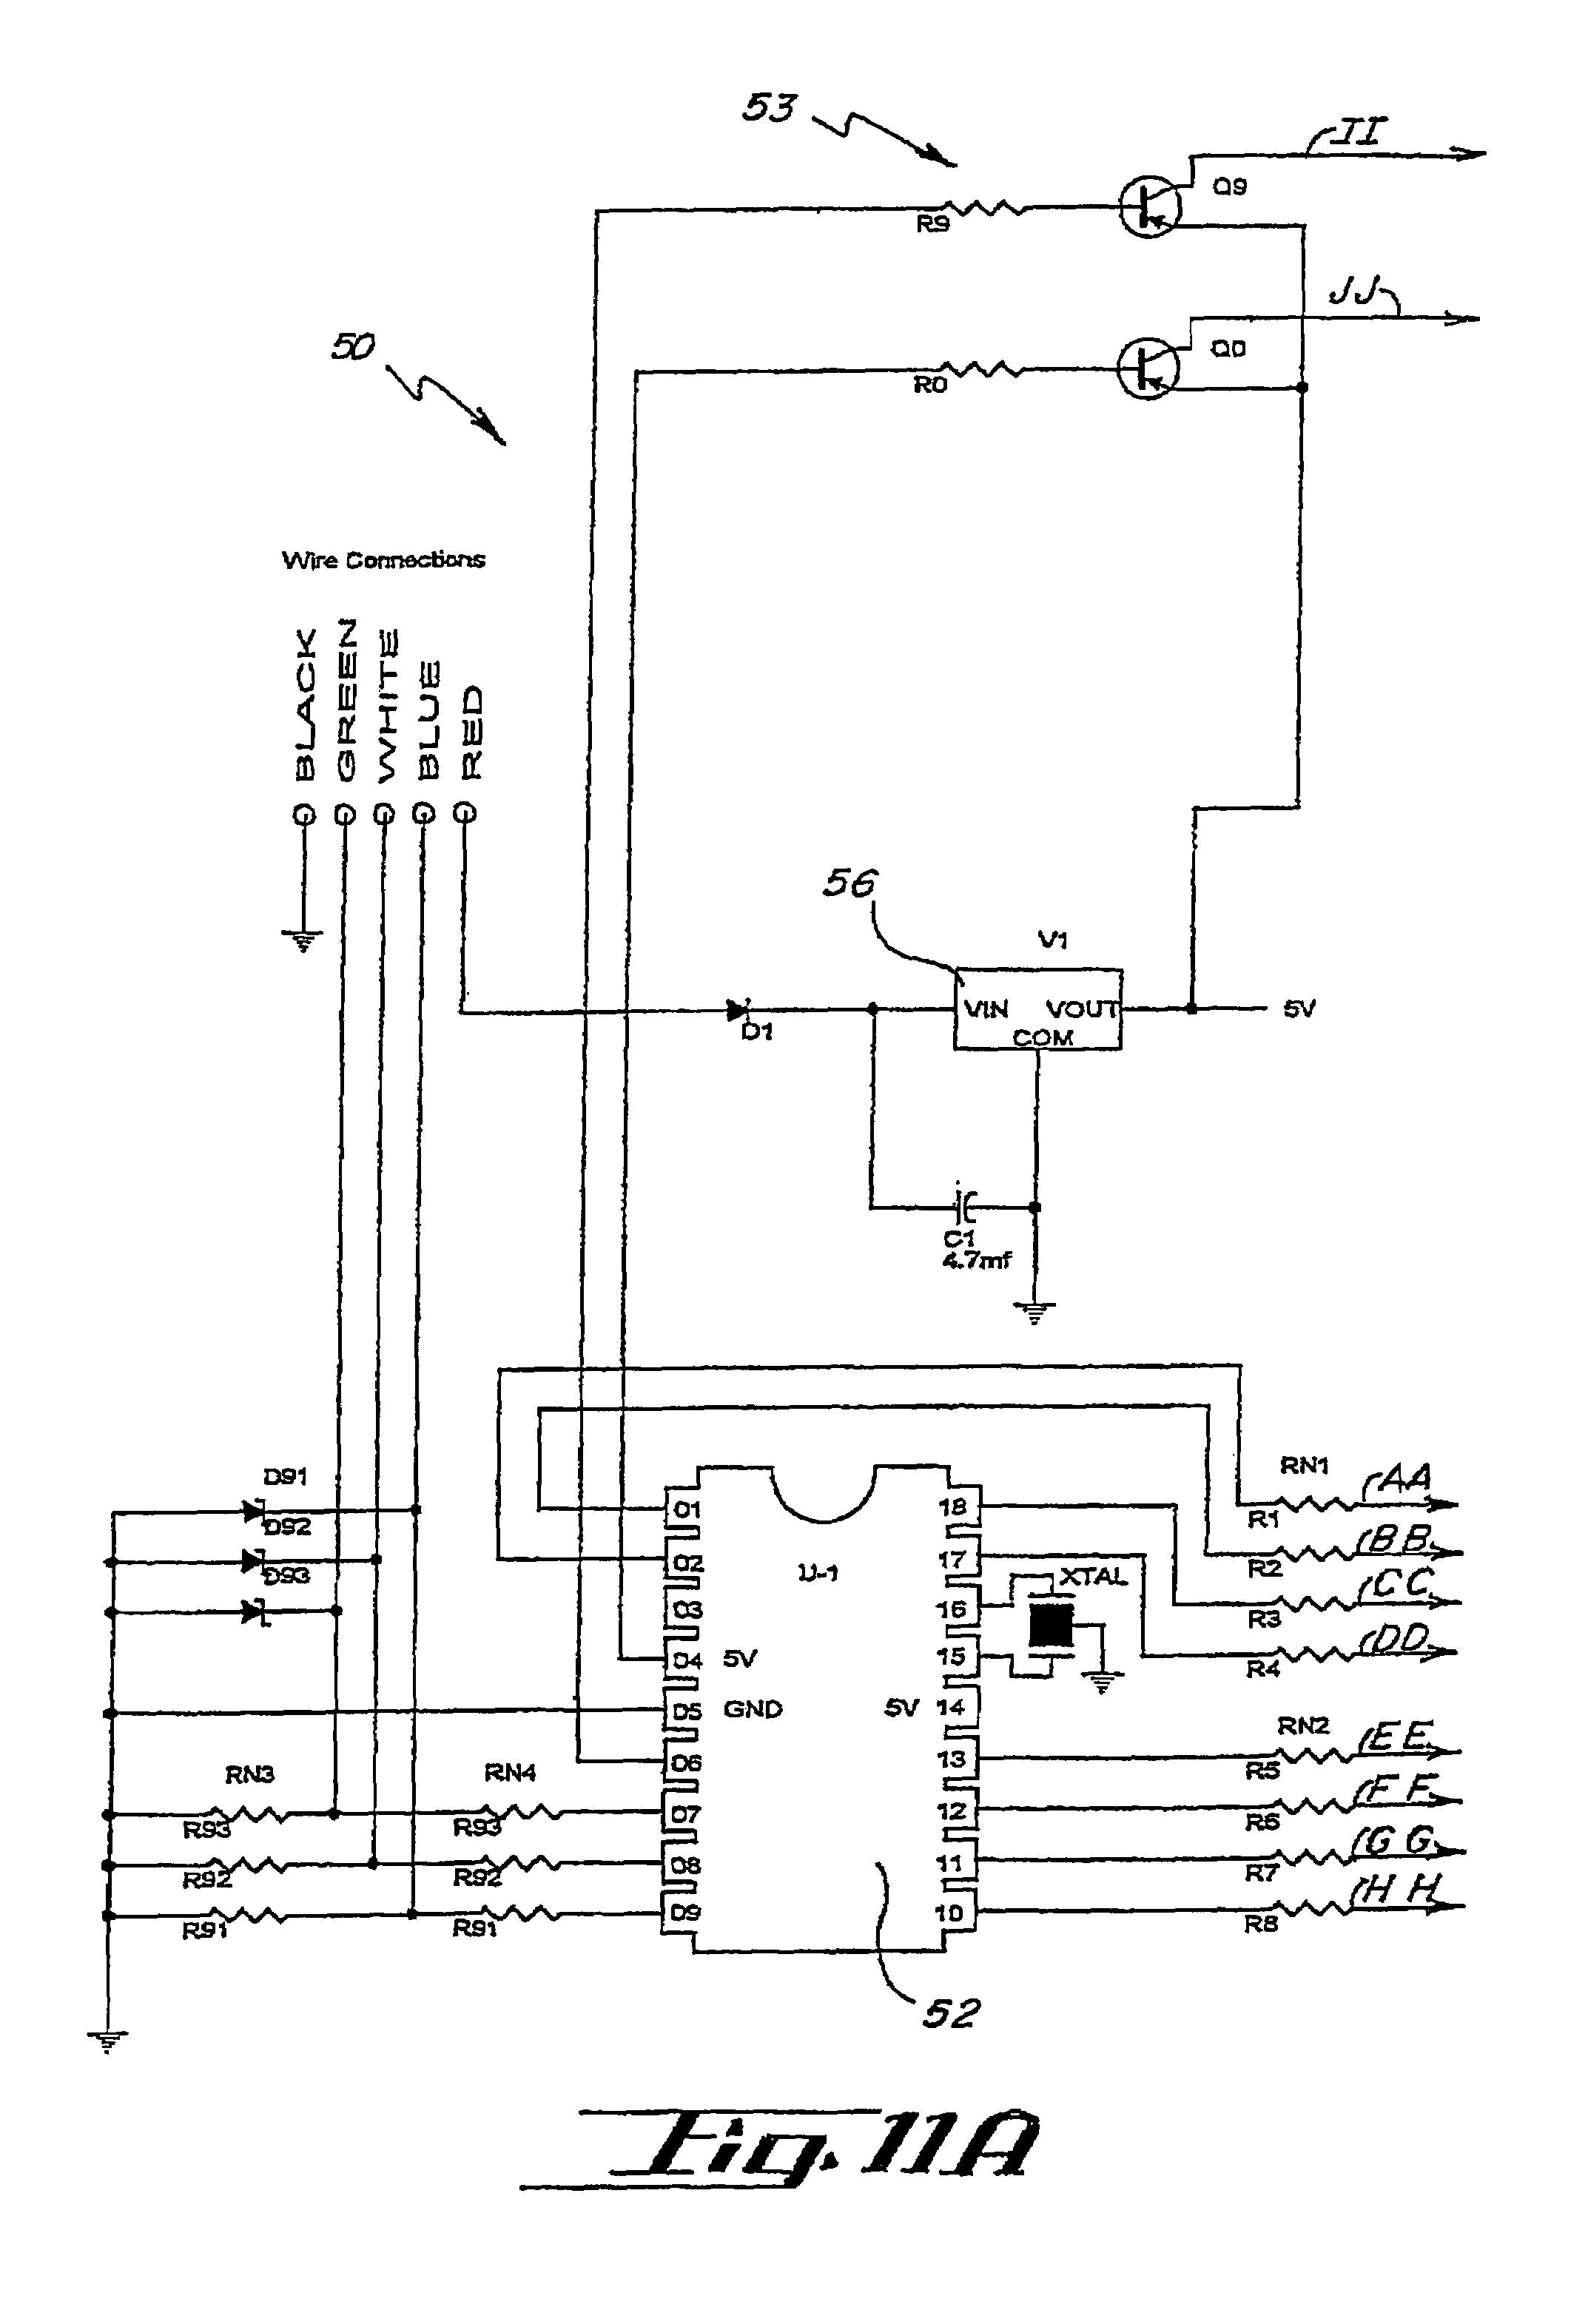 hight resolution of best of wiring diagram for shop lights diagrams digramssample diagramimages wiringdiagramsample wiringdiagram